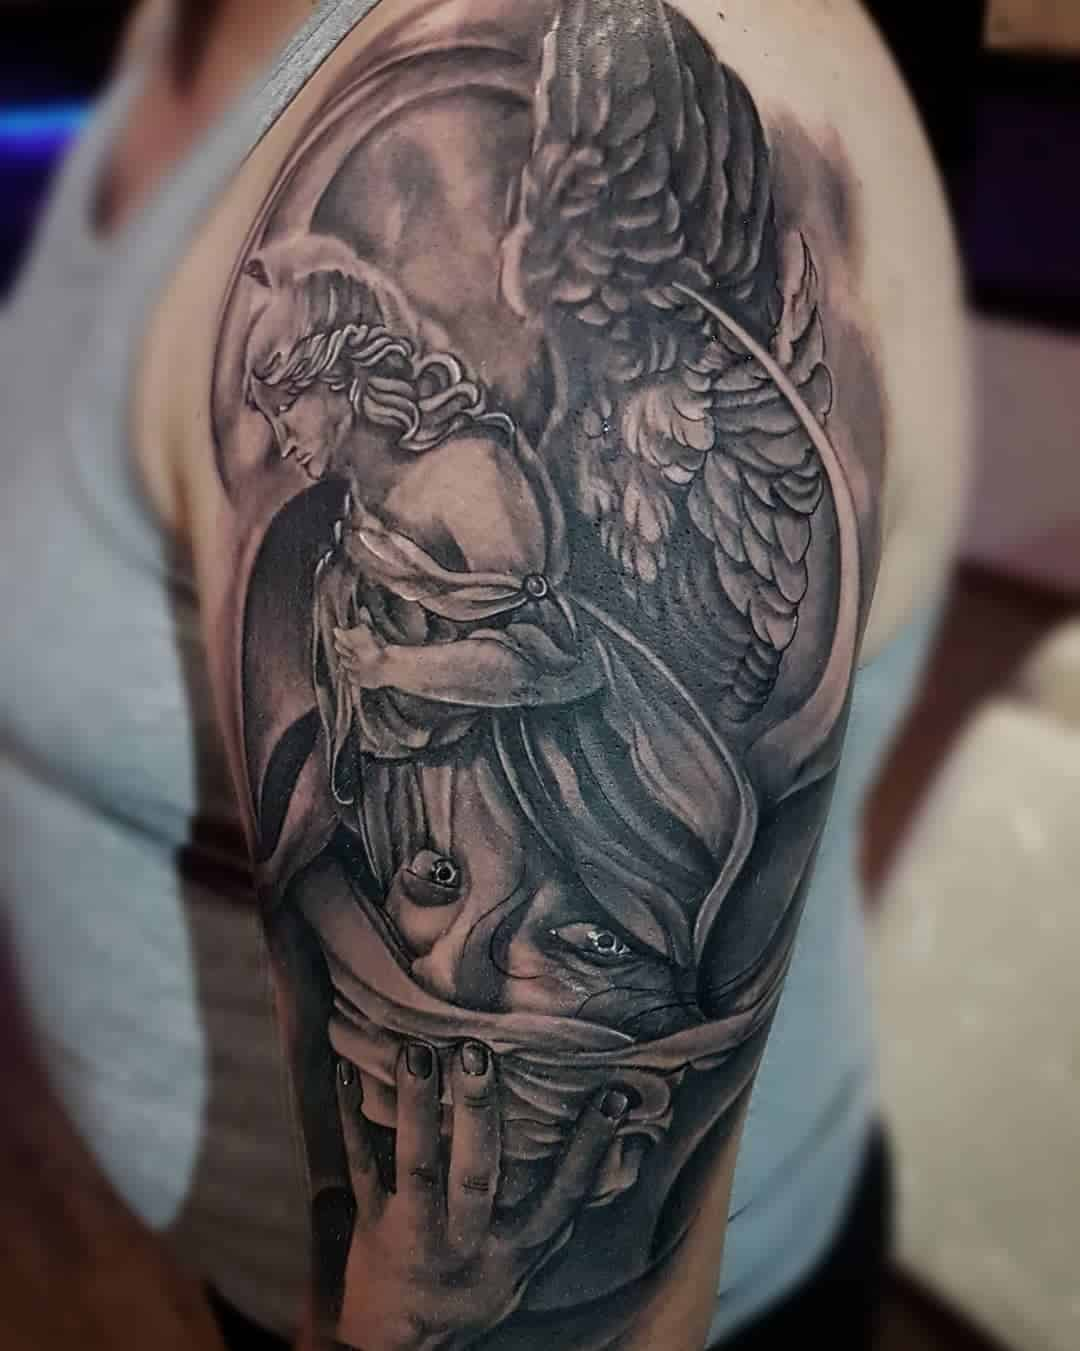 Tattoo angel by @gribowsky